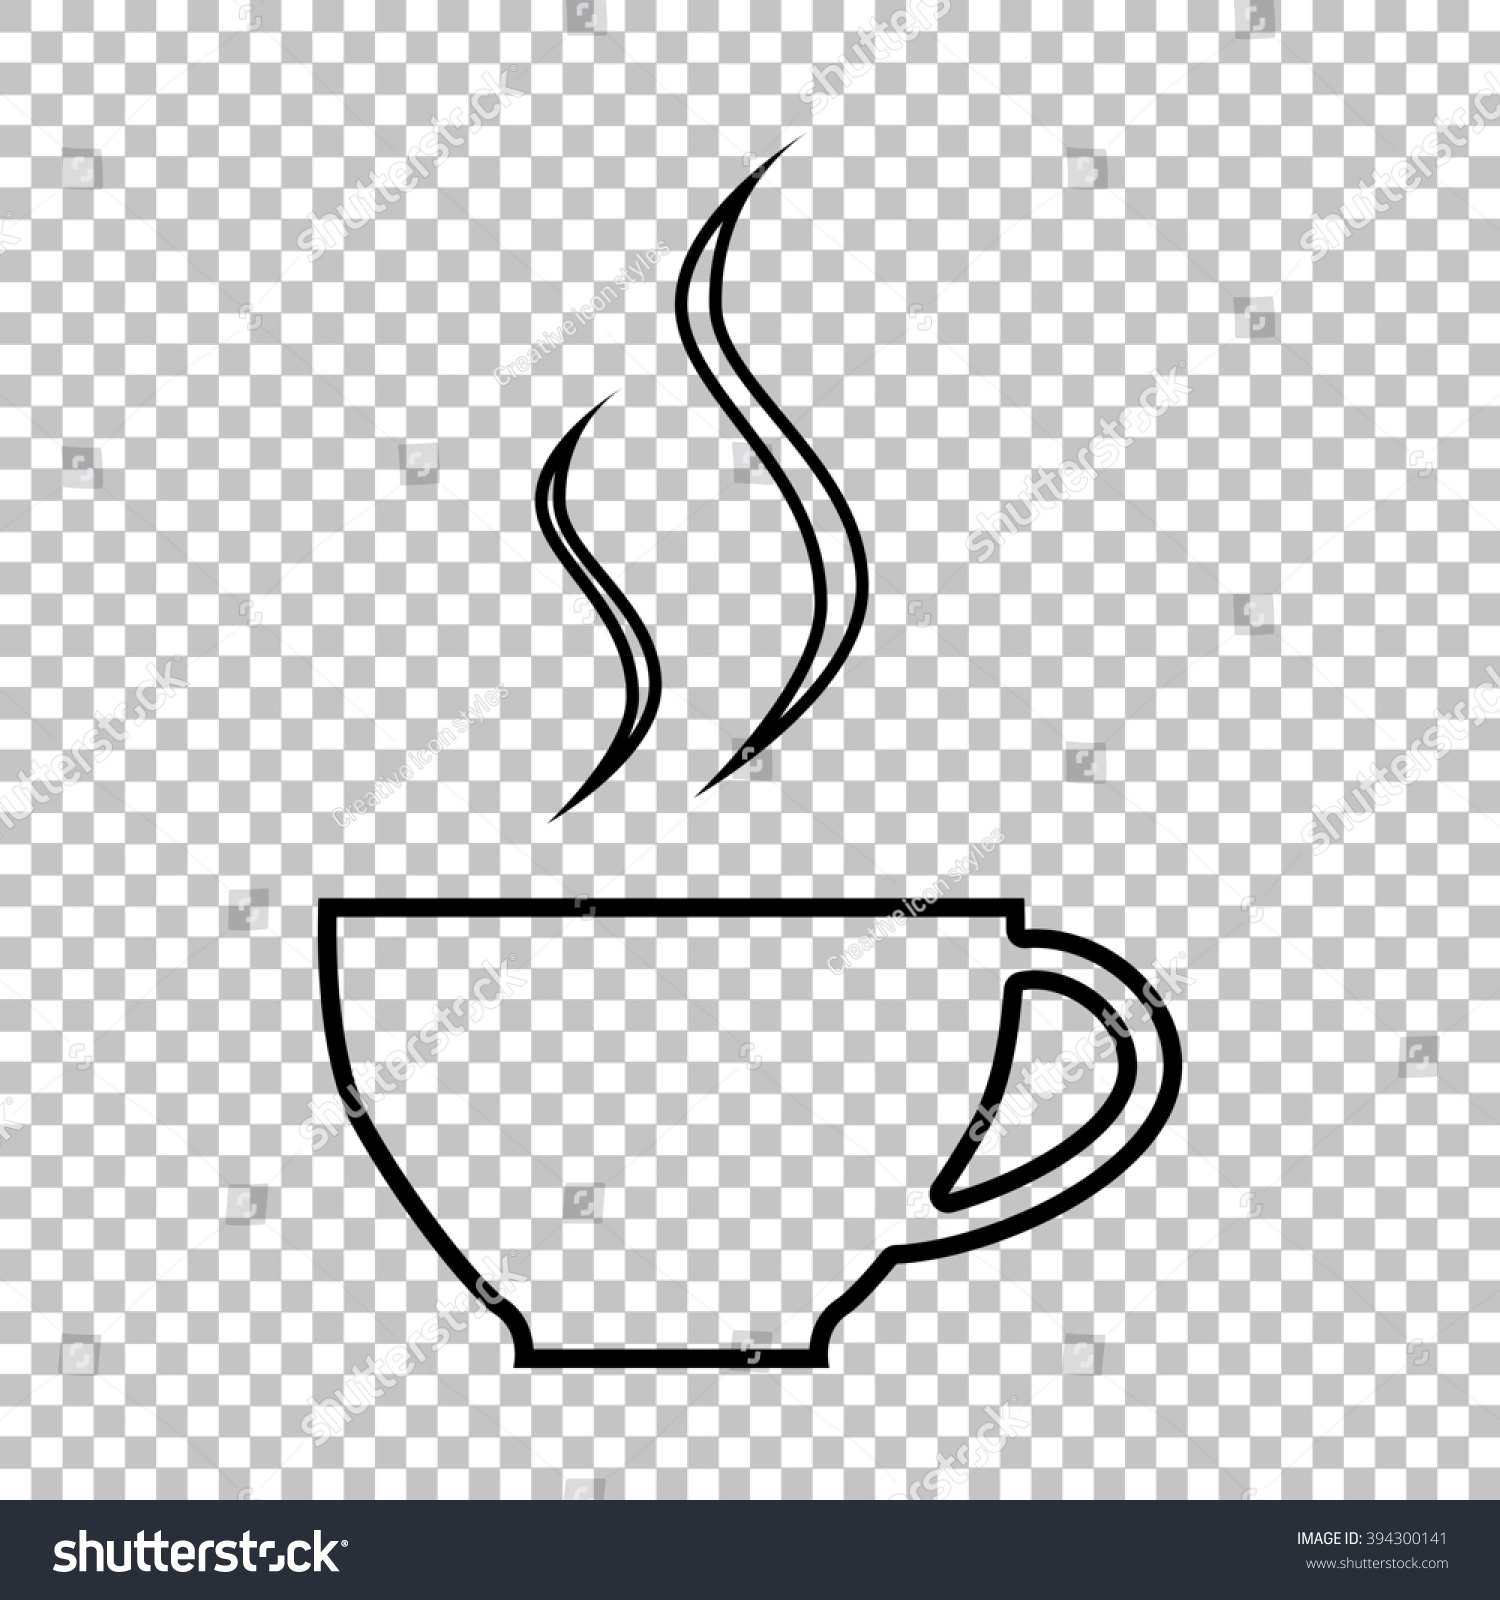 Coffee cup transparent - Cup Of Coffee Line Icon On Transparent Background